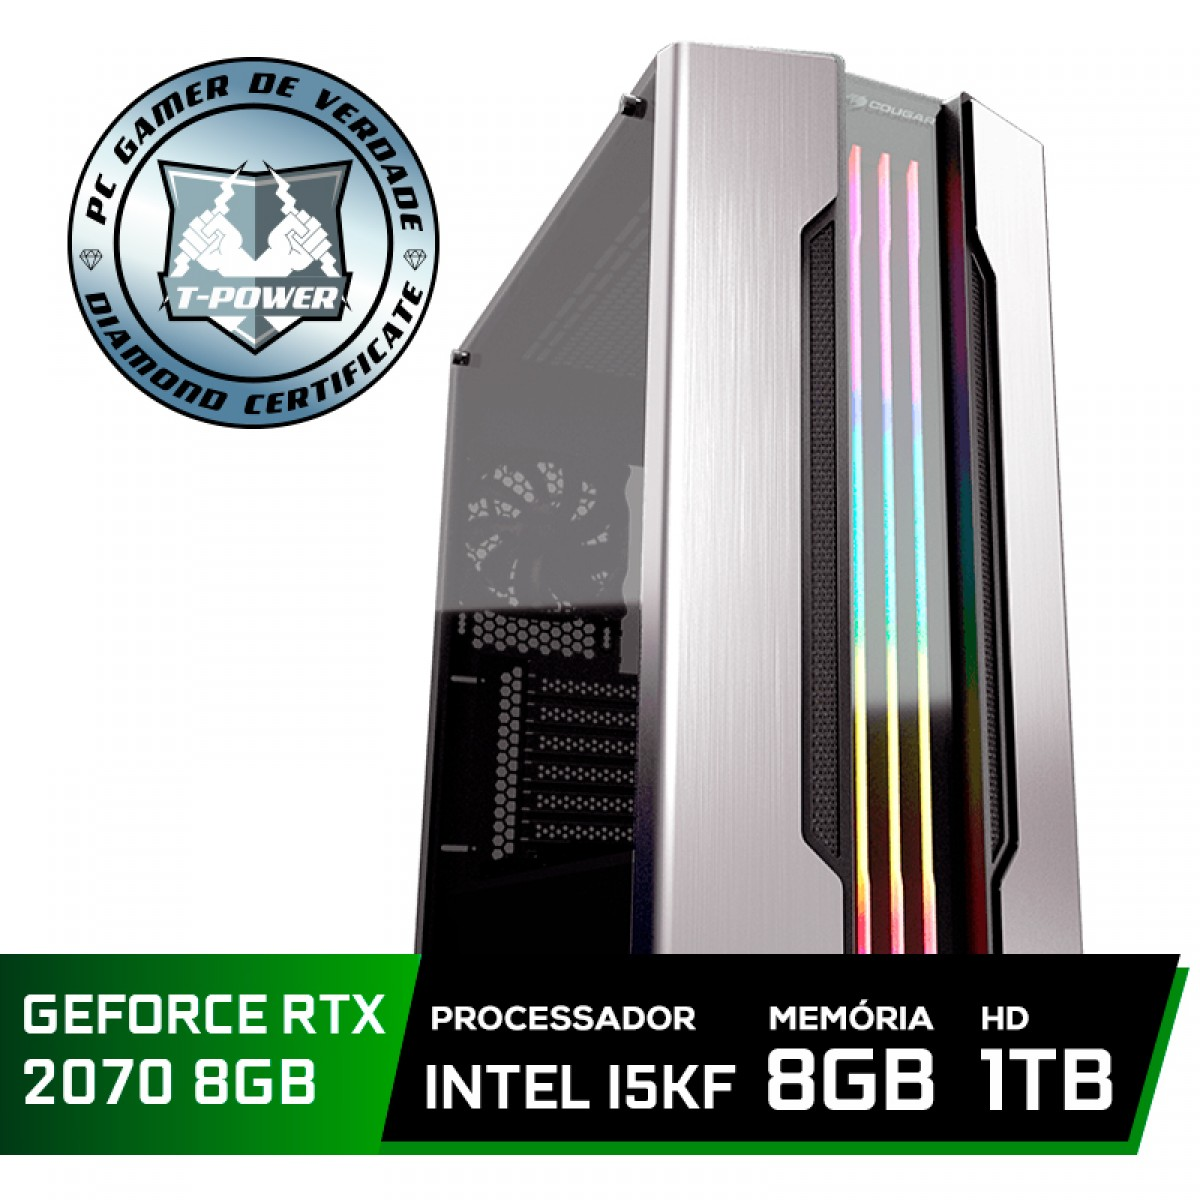 Pc Gamer Super Tera Edition Intel i5 9600KF / Geforce RTX 2070 / DDR4 8GB / HD 1TB / 600W